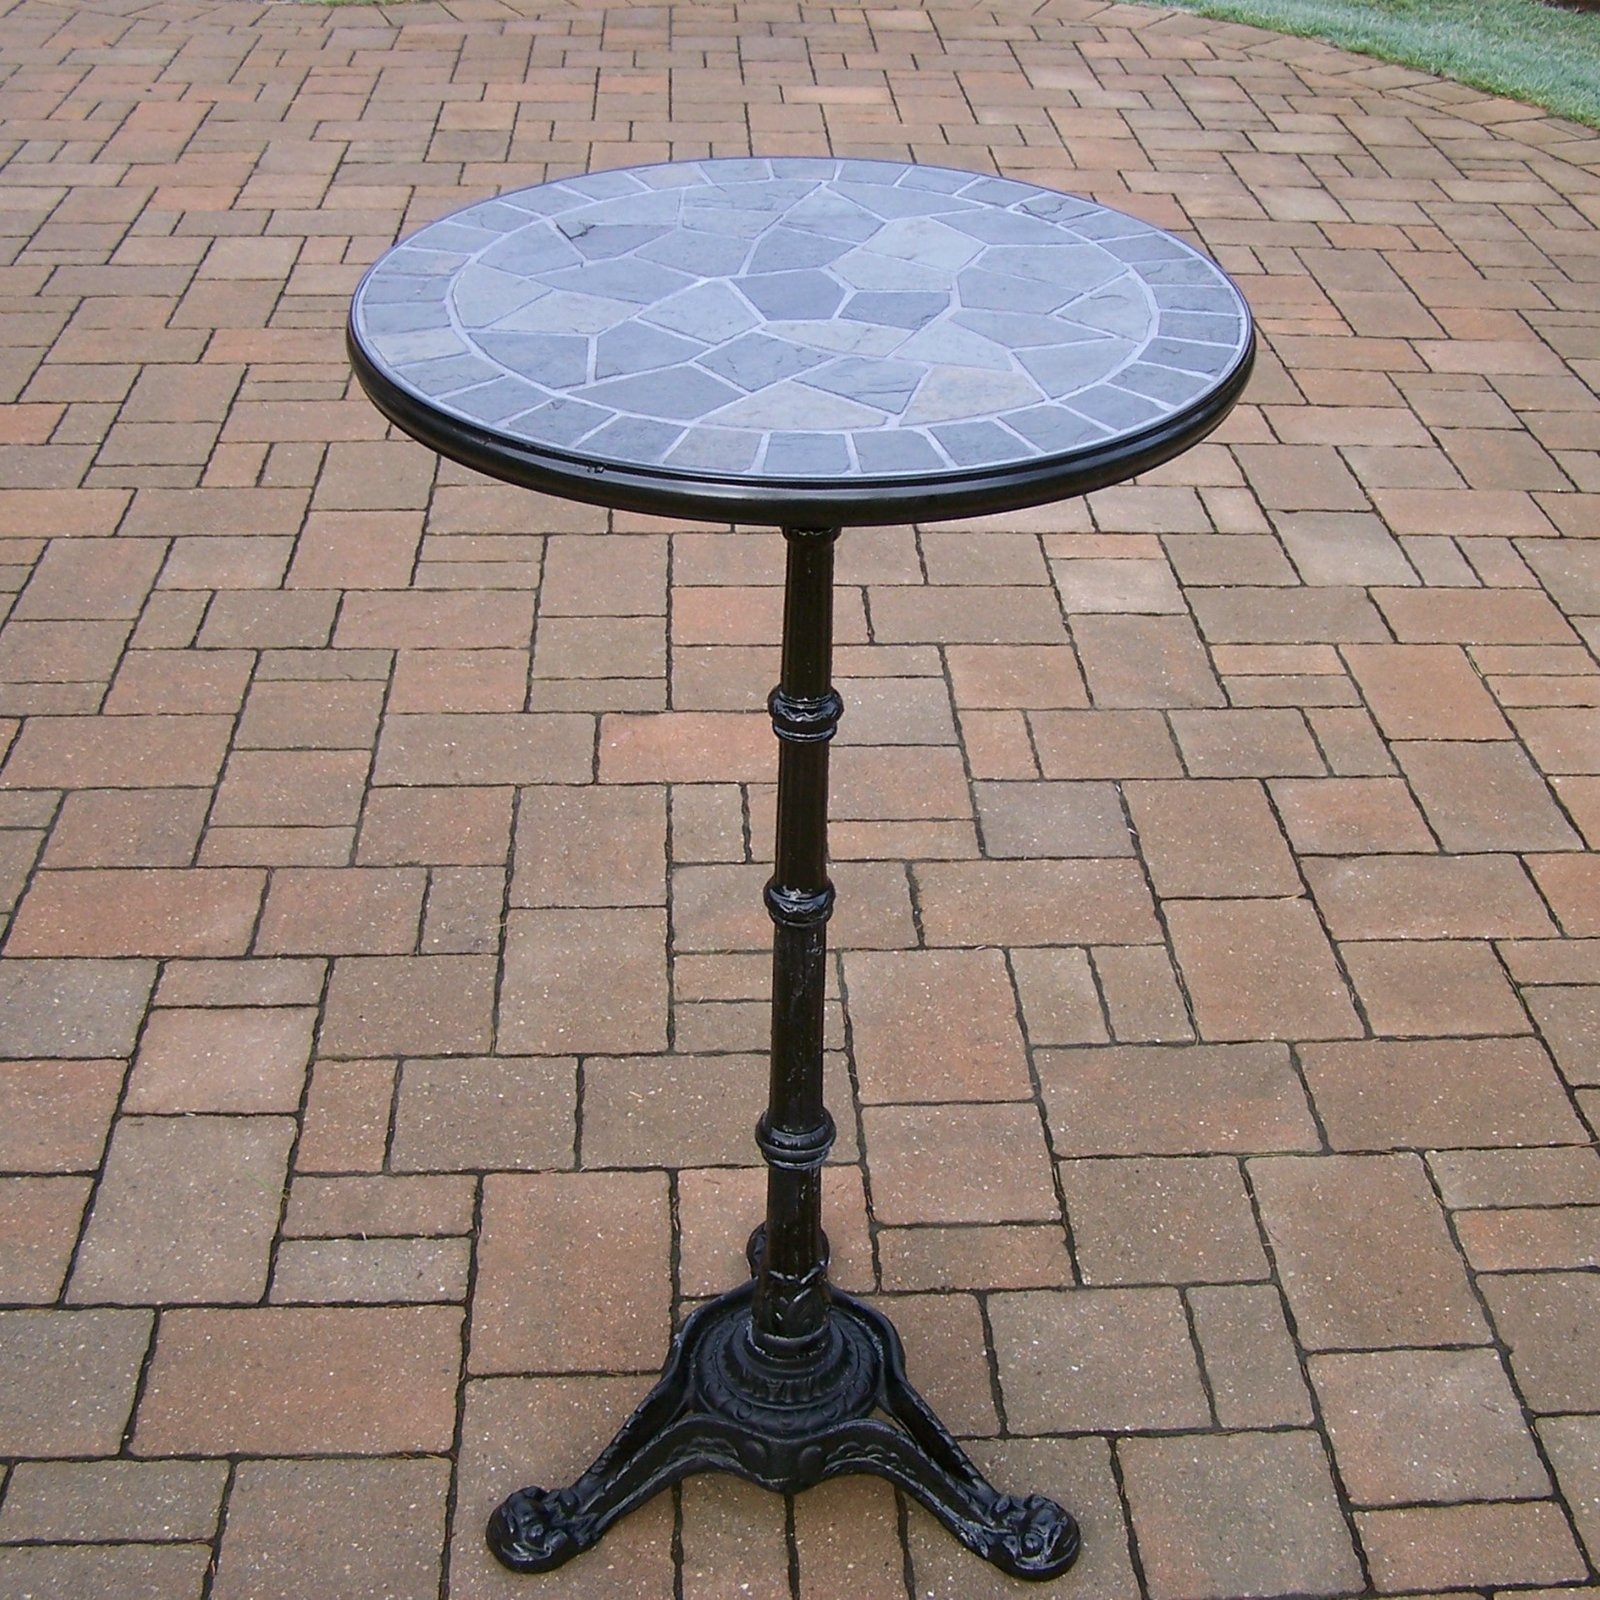 Oakland Living Stone Art Bar Height Patio Dining Table Walmart Com